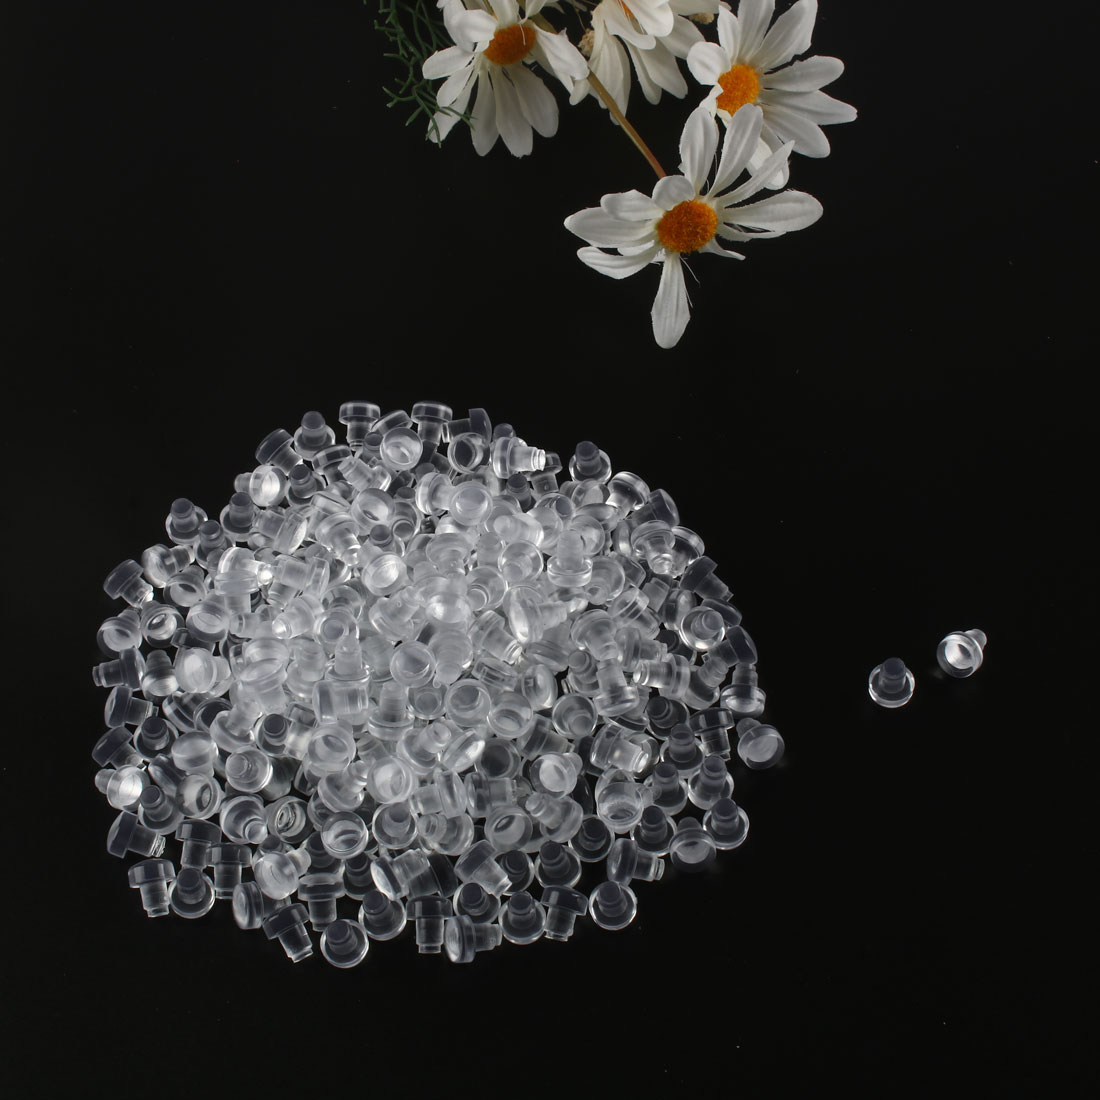 300pcs 6mm Soft Clear Flat Stem Bumpers Glide, Patio Outdoor Furniture Table Top - image 2 de 4